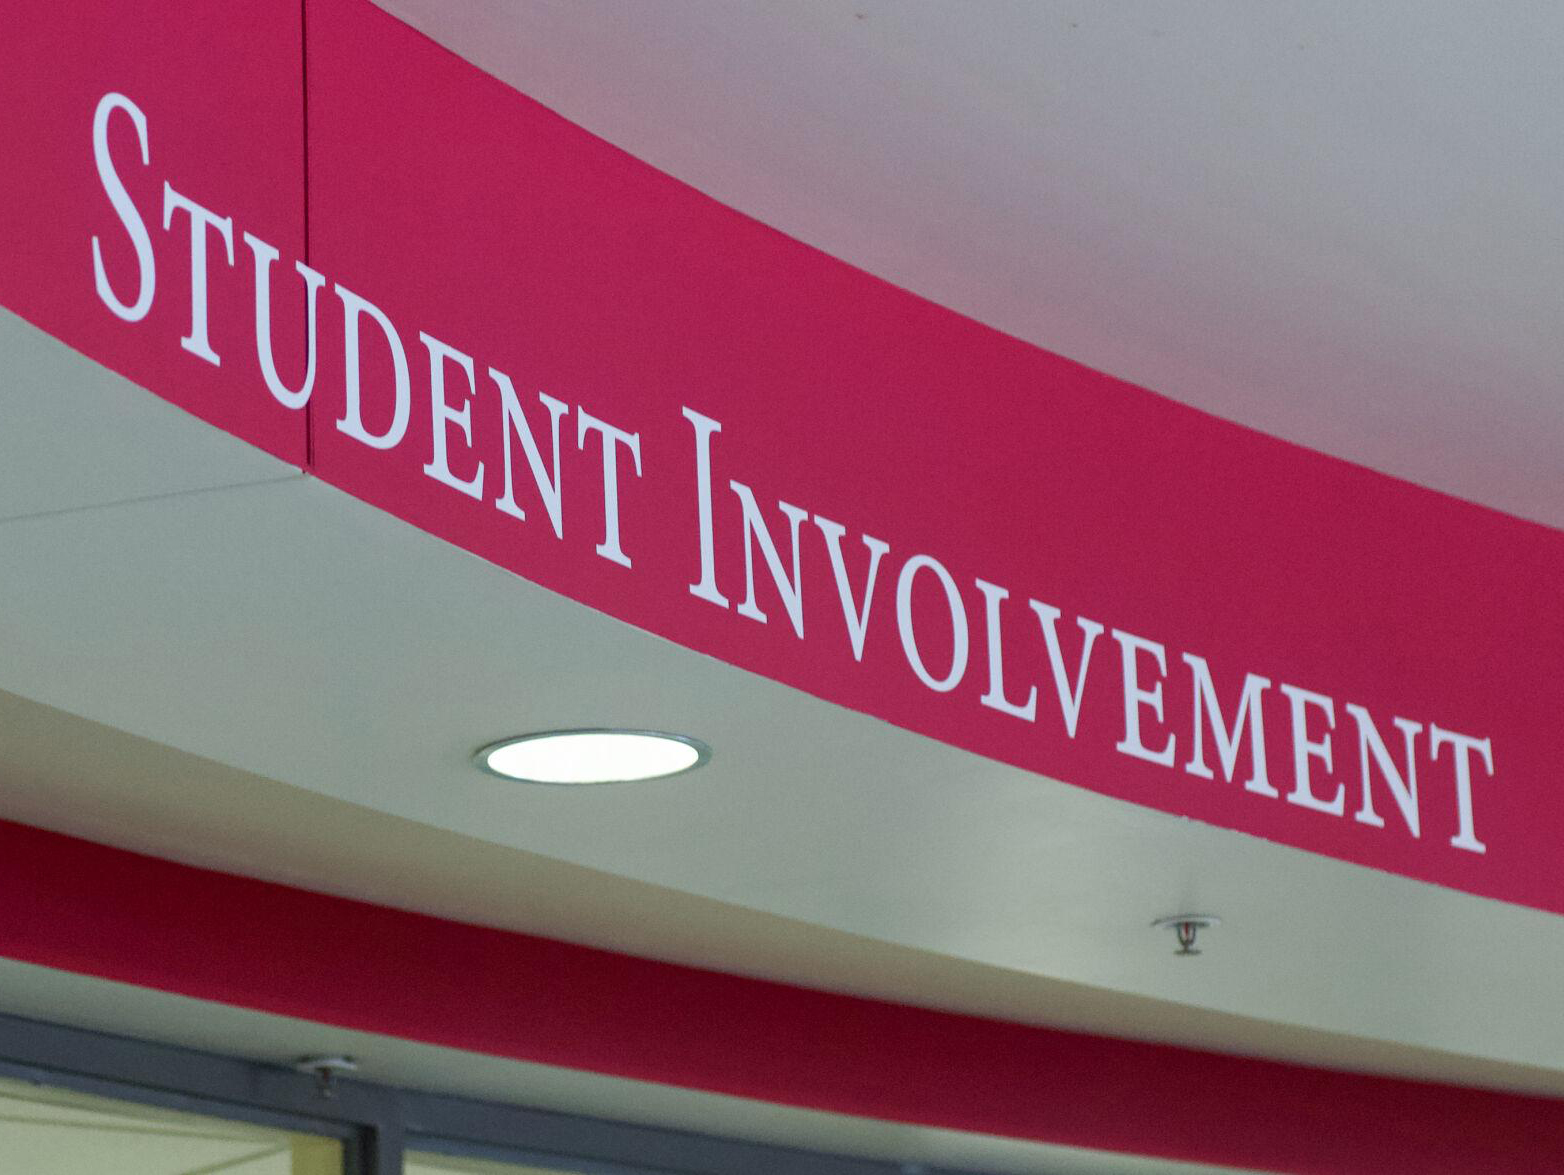 Student Involvement is headquartered in Room 200 of the Nebraska Union.